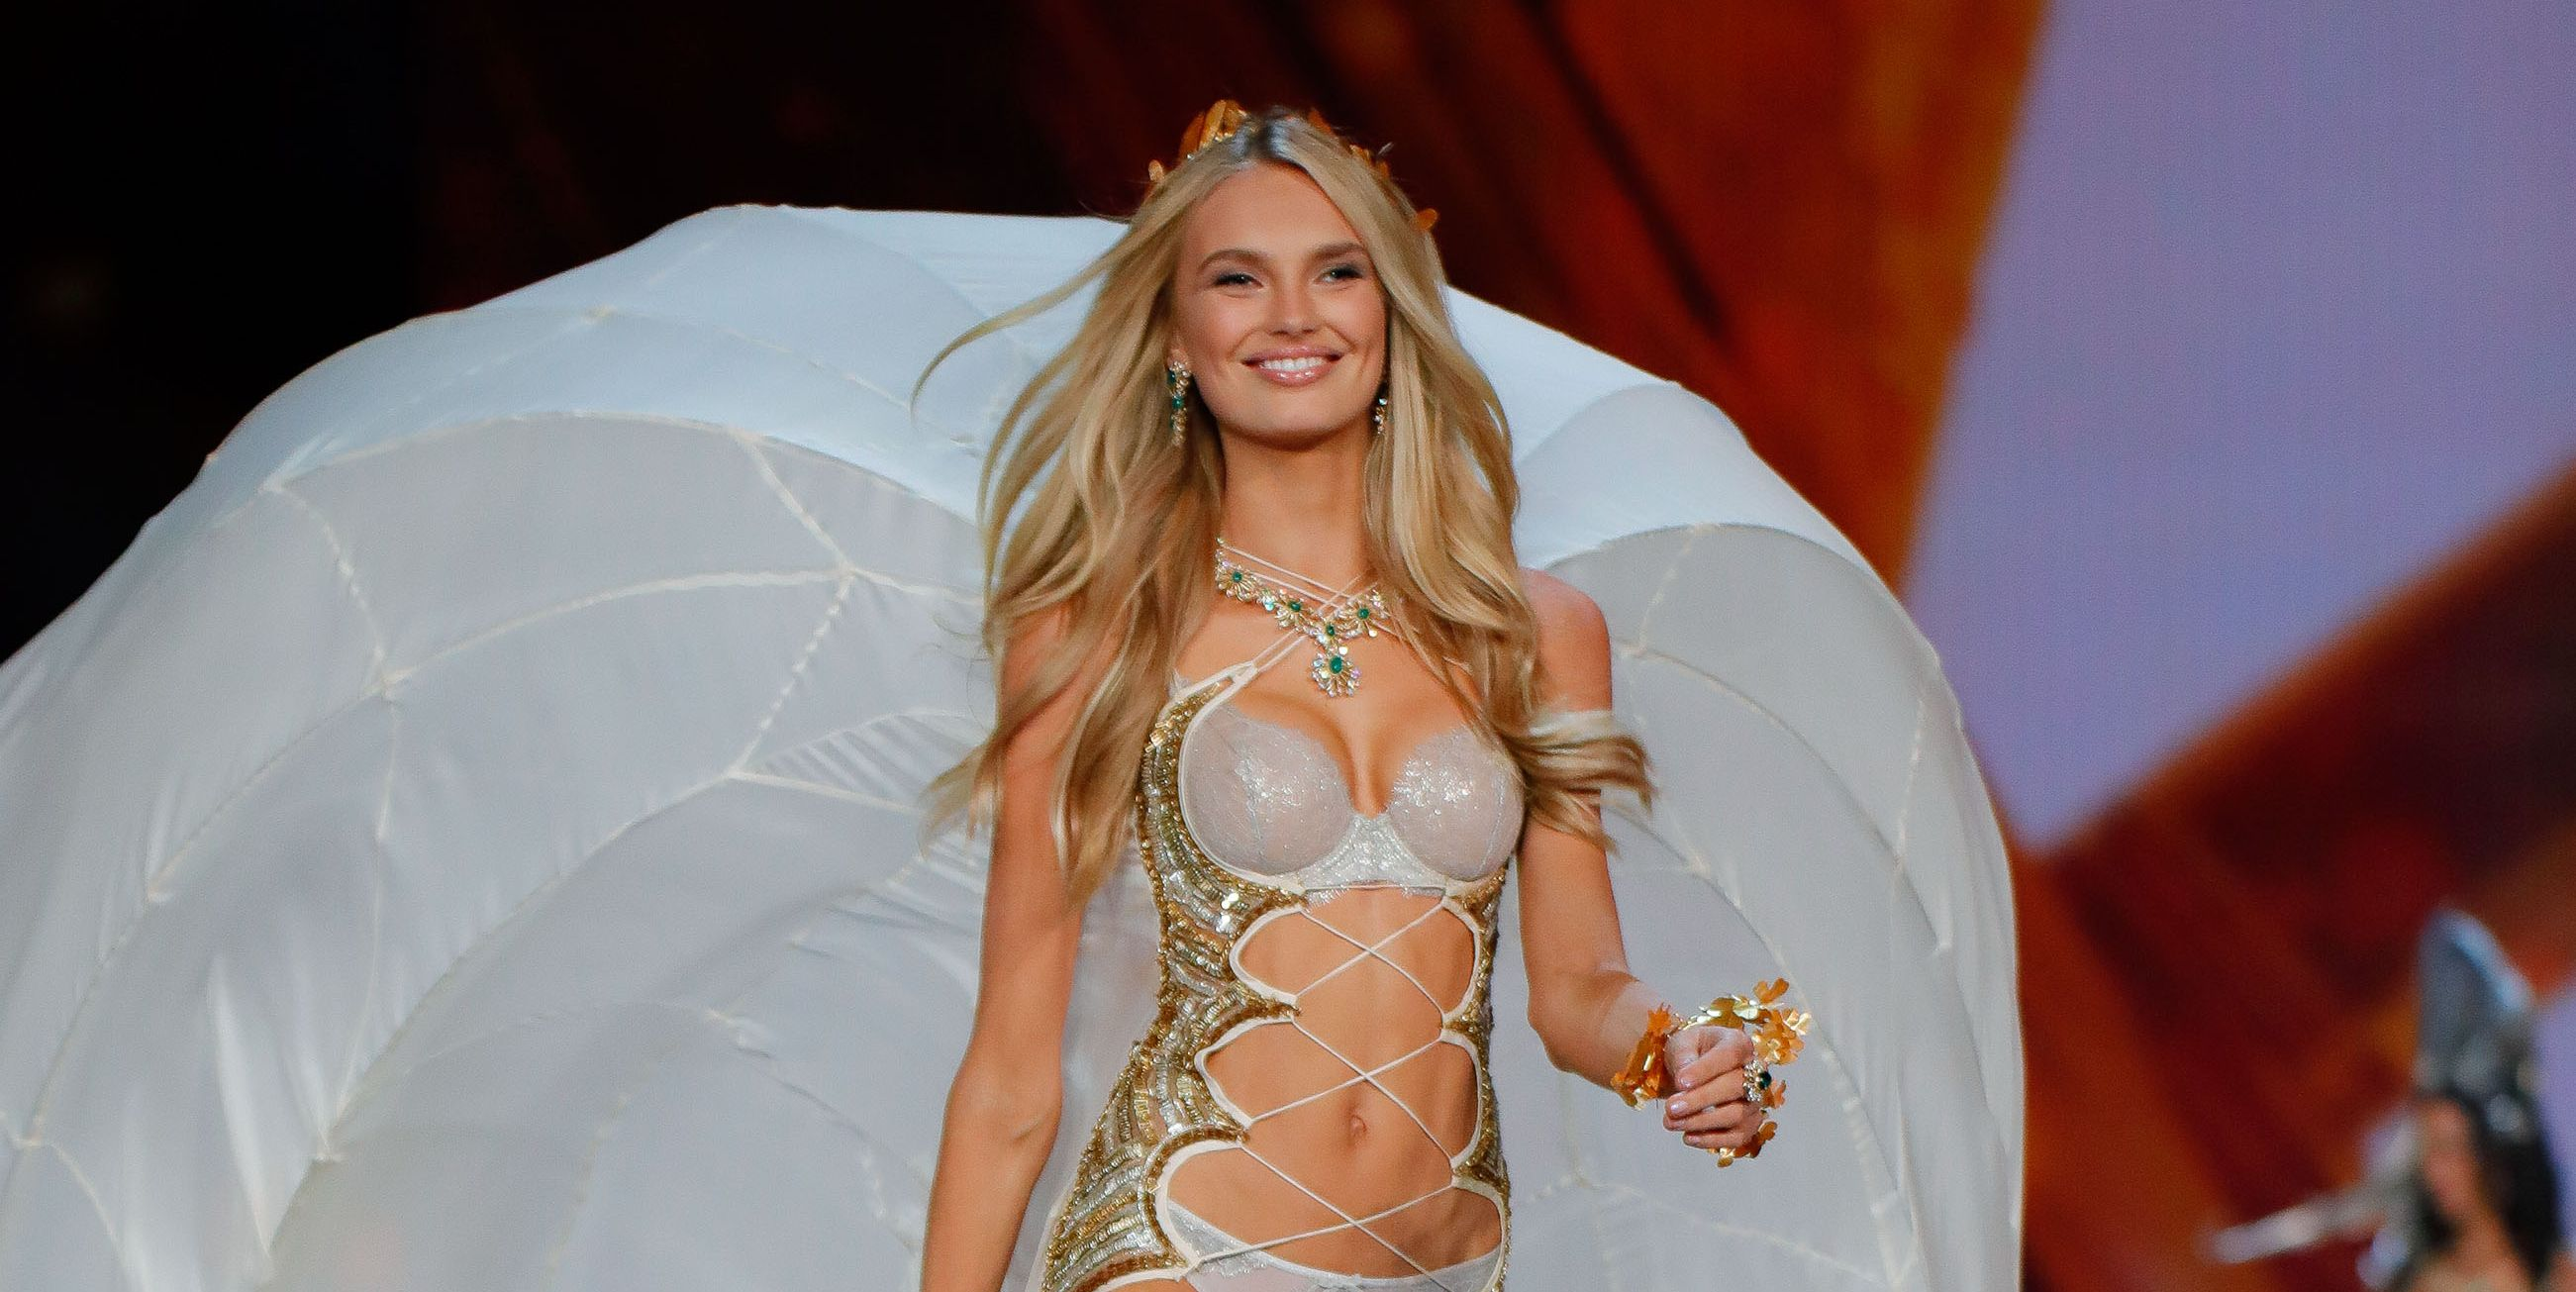 mary katrantzou victoria's secret romee strijd